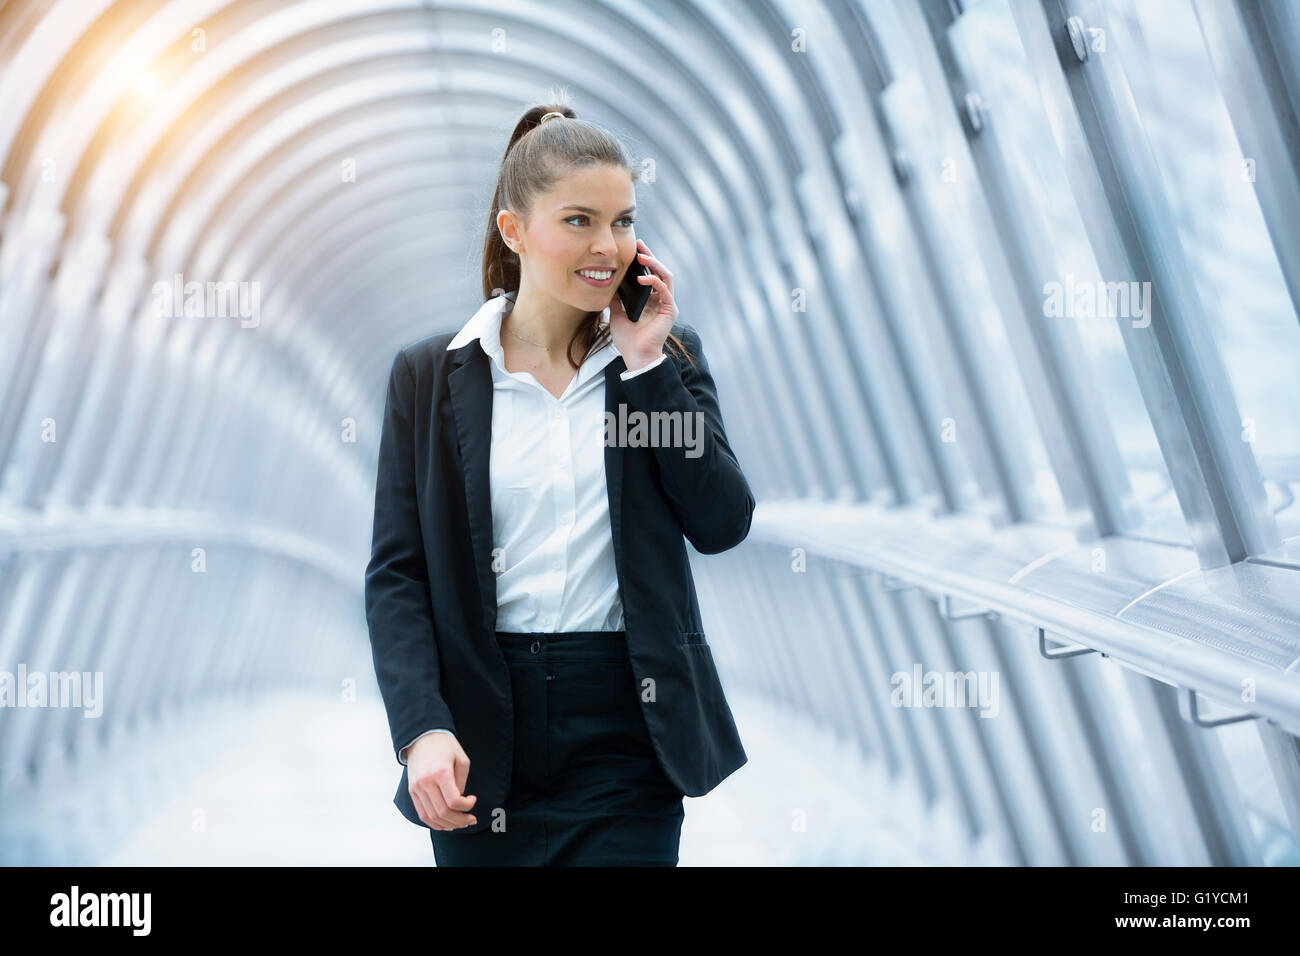 Businesswoman talking on mobile phone - Stock Image